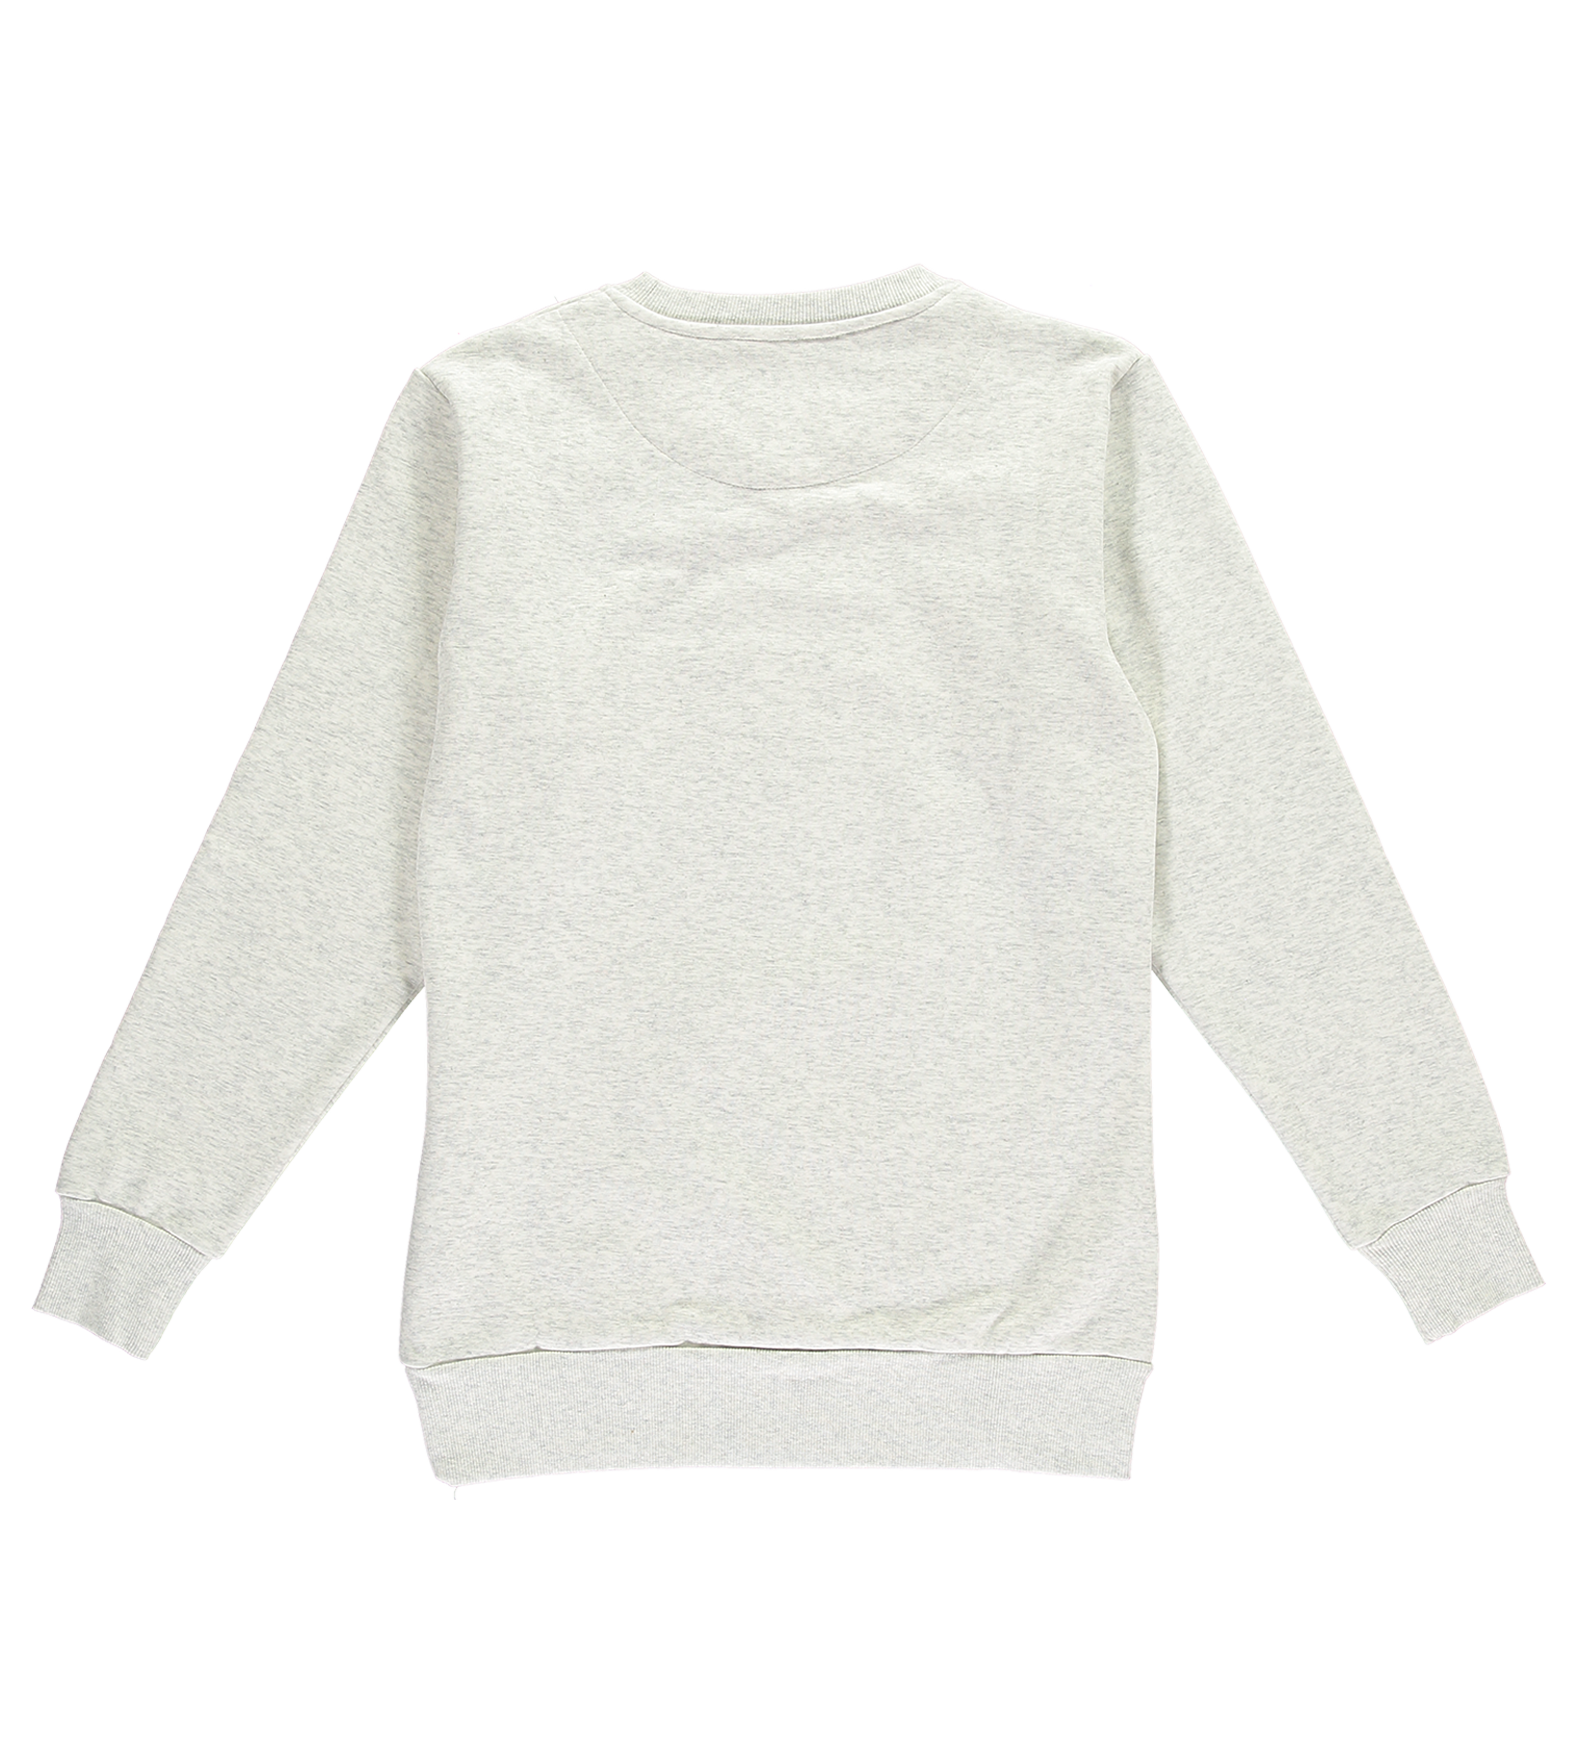 Avalanche Sweatshirt — White